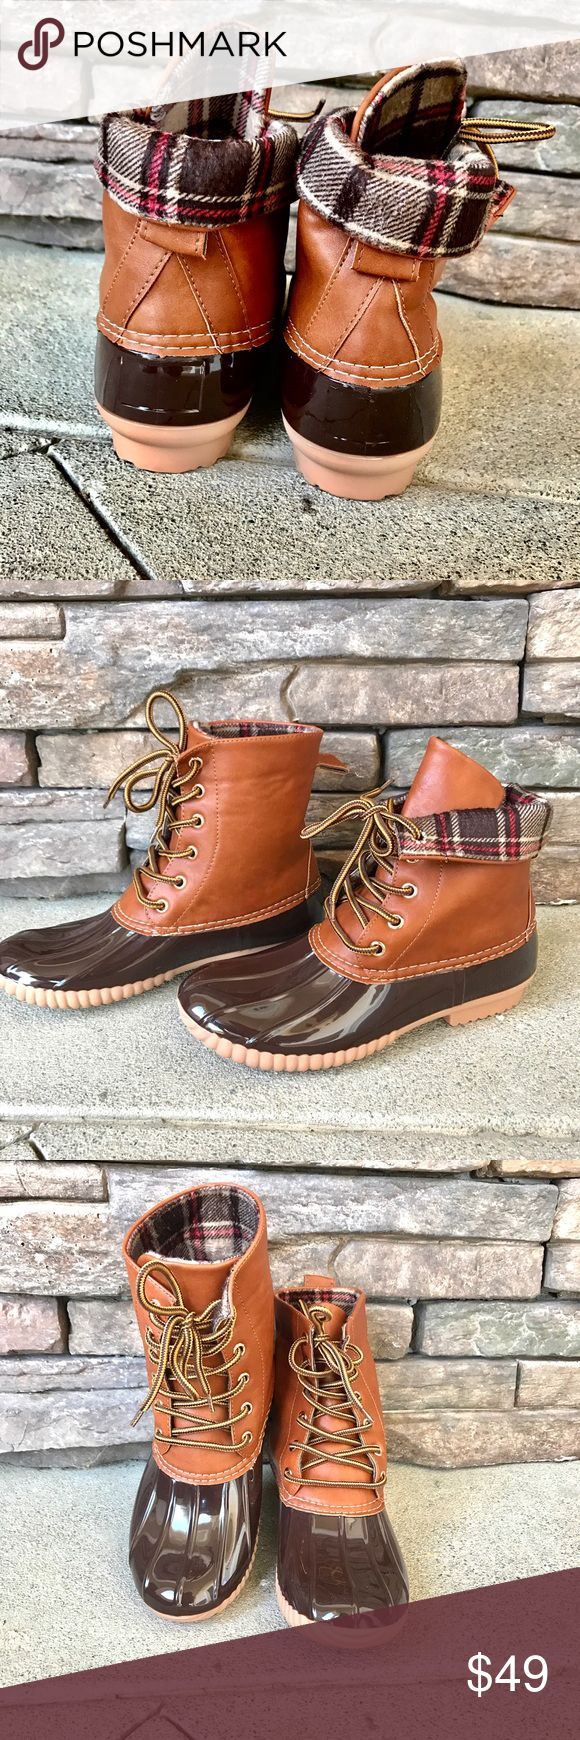 LAST SIZES Plaid Warm Winter Snow Duck Boots 🍂Brand New 🍂Water Proof🍂FULLY Insulated lining🍂Two Tone Laces🍂True to Size🍂All Vegan Materials 🍂Feel Free To Ask Question!🍂No Trades🍂🍃 www.thefairyden.com🍃 Shoes Winter & Rain Boots